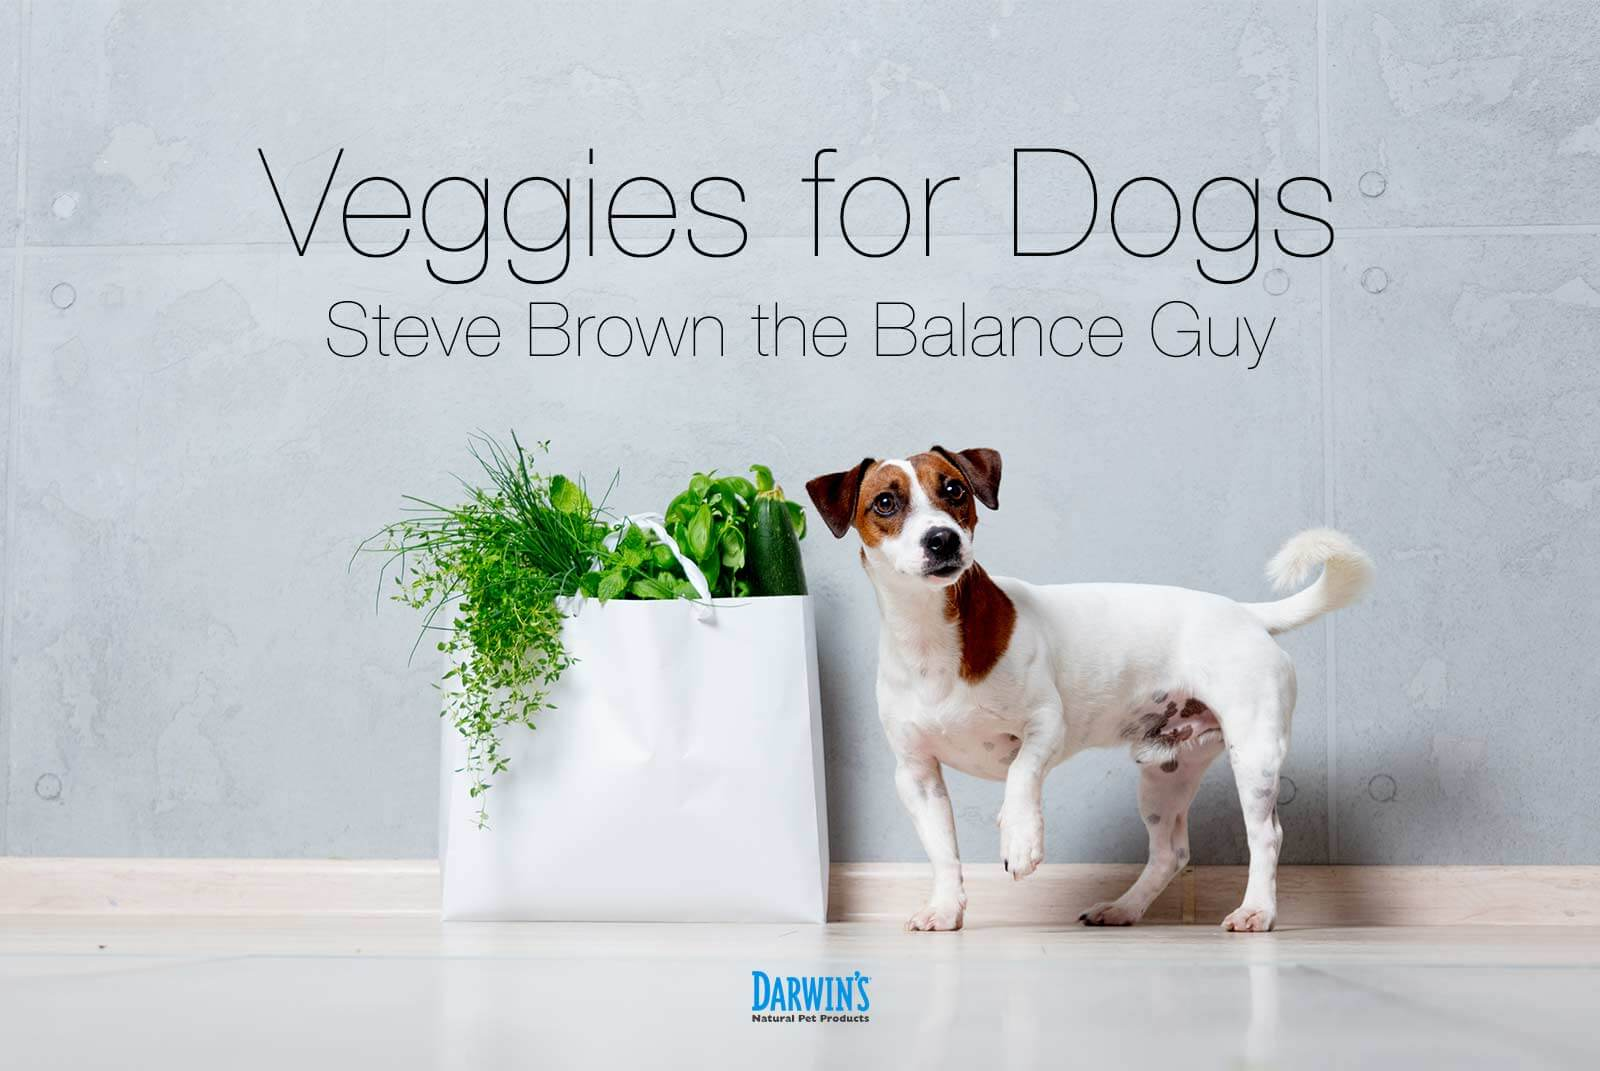 Yes; Vegetables for Dogs!